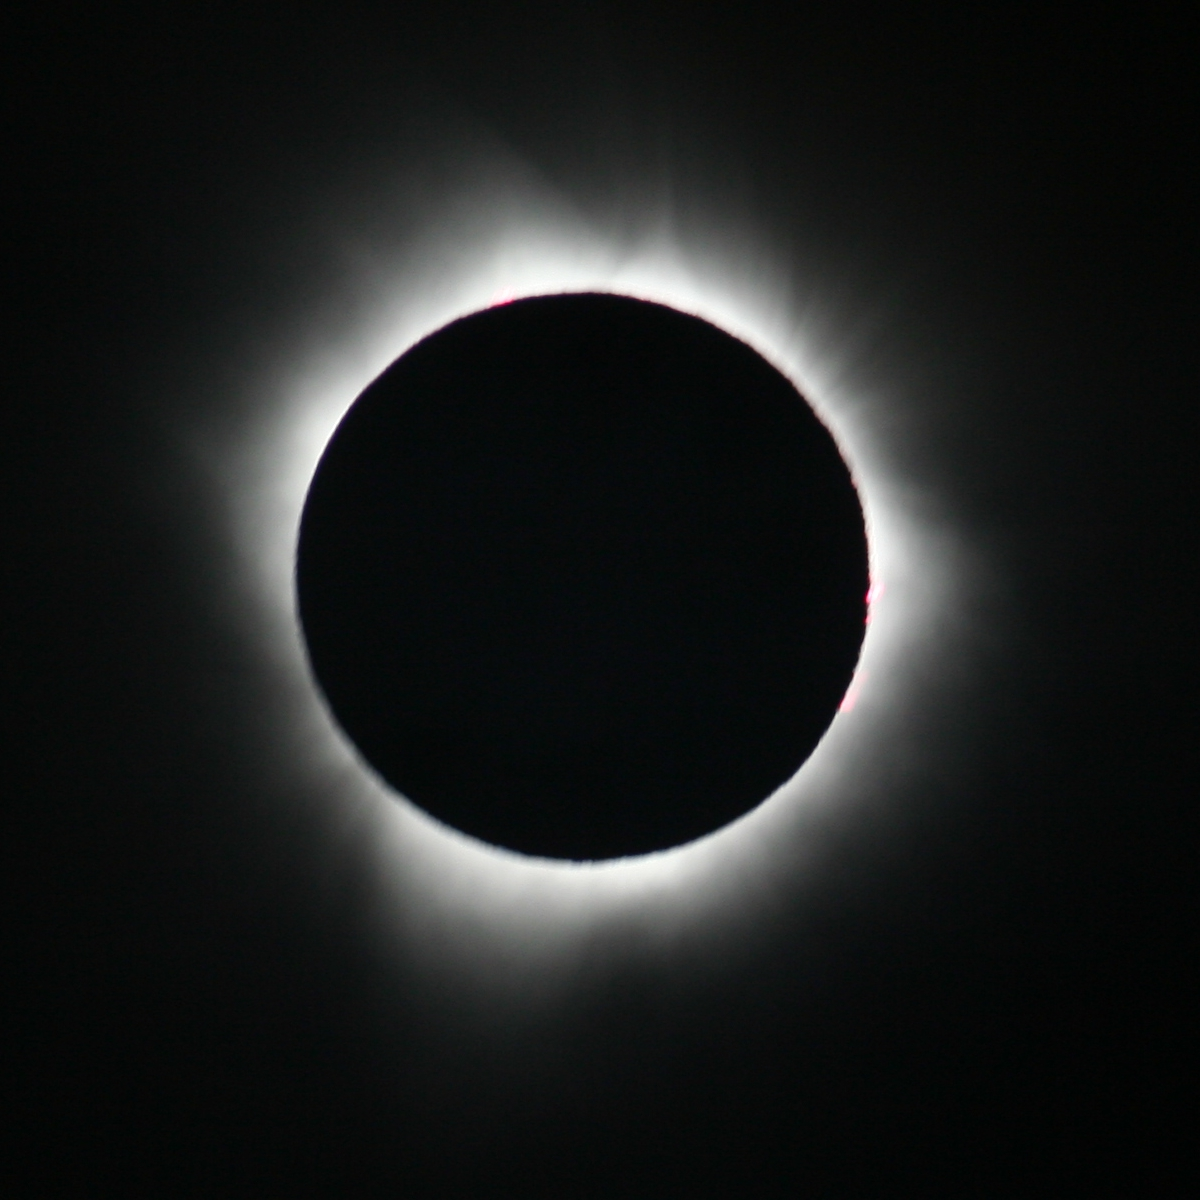 Sol A Clipser Solar Eclipse Of July 11 2010 Wikipedia